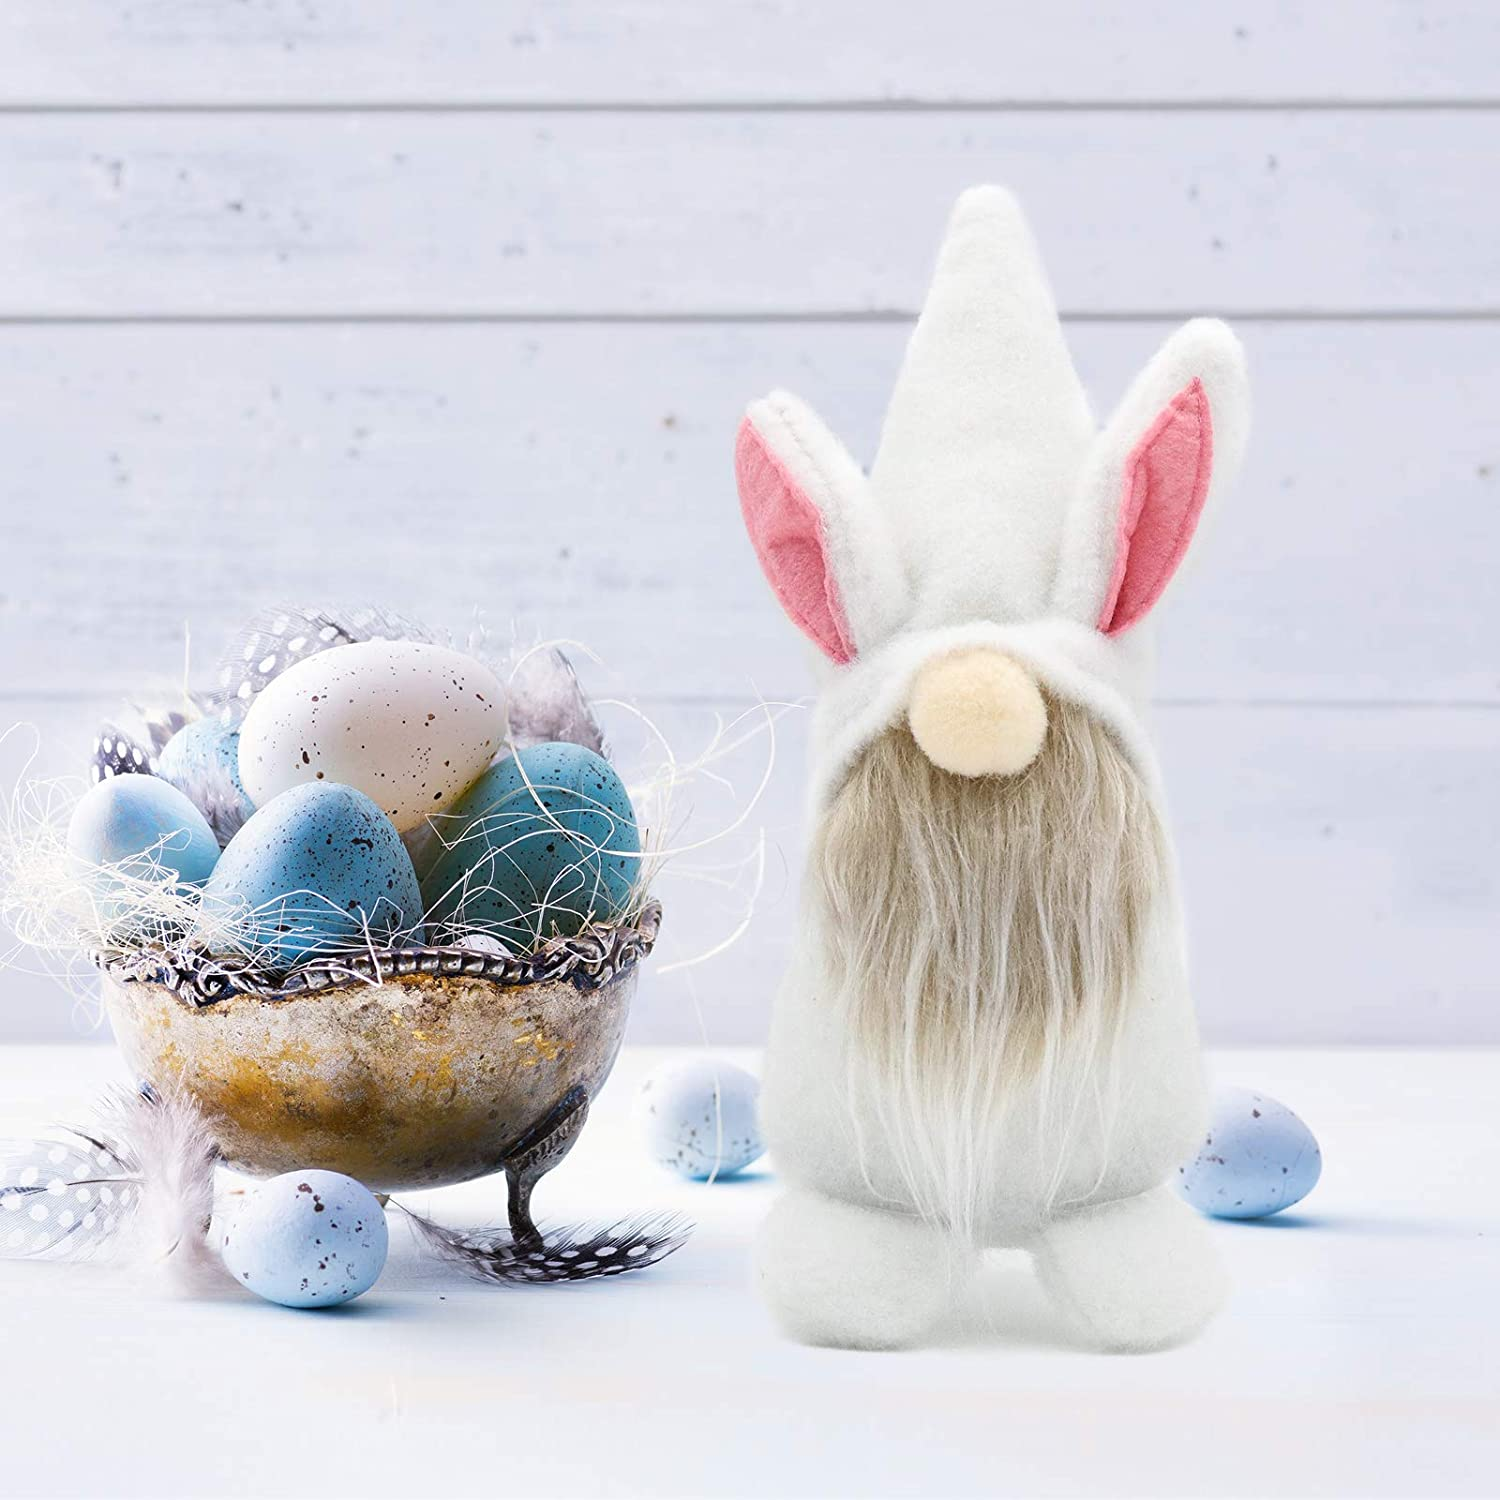 Ornaments Collectible Figurine Rabbit Doll Gifts YRVHCK Easter Gnome Decorations 2Pack Handmade Gnome Faceless Plush Doll Scandinavian Plush Dwarf Easter Bunny Decorations for The Home